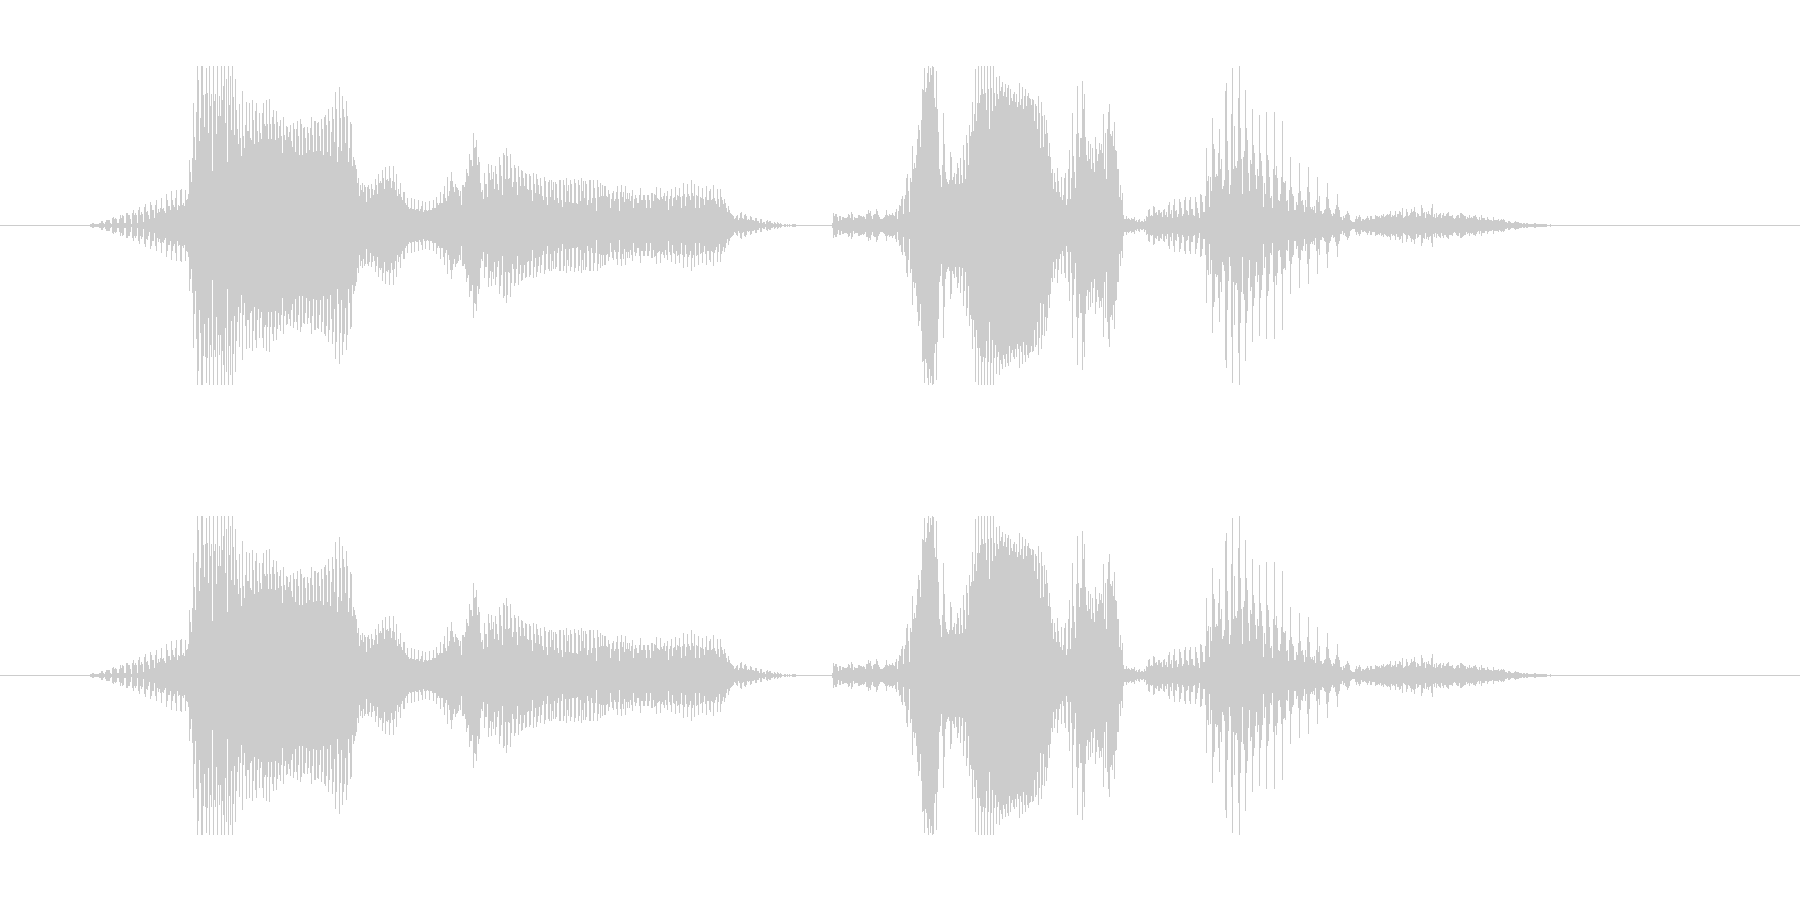 MERRY X`MASS!!'s unreproduced waveform